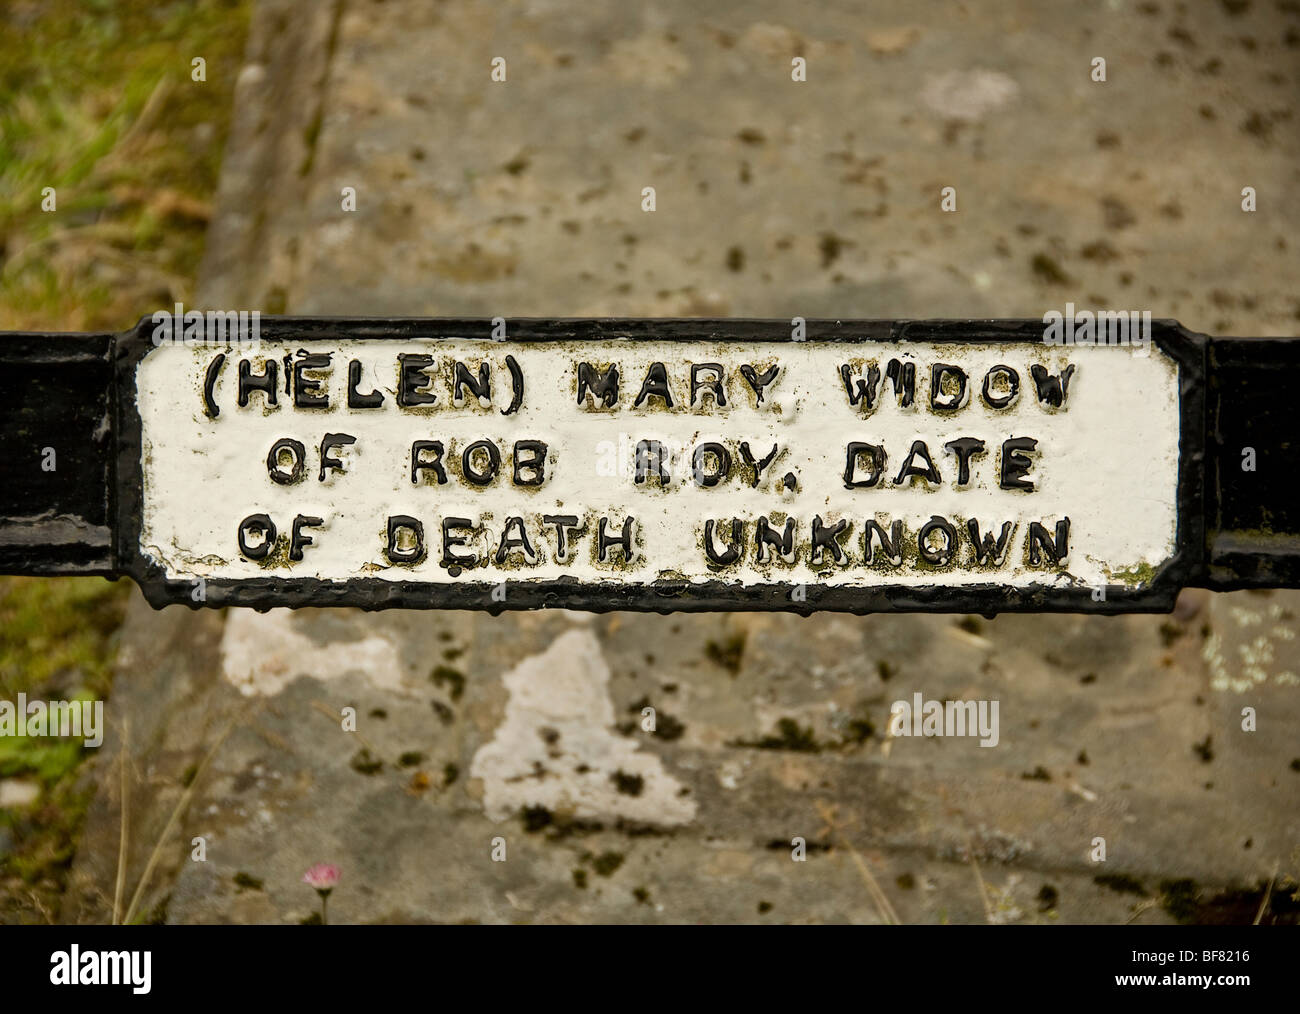 Helen Mary MacGregor's Name plaque on Rob Roy's family grave Stock Photo